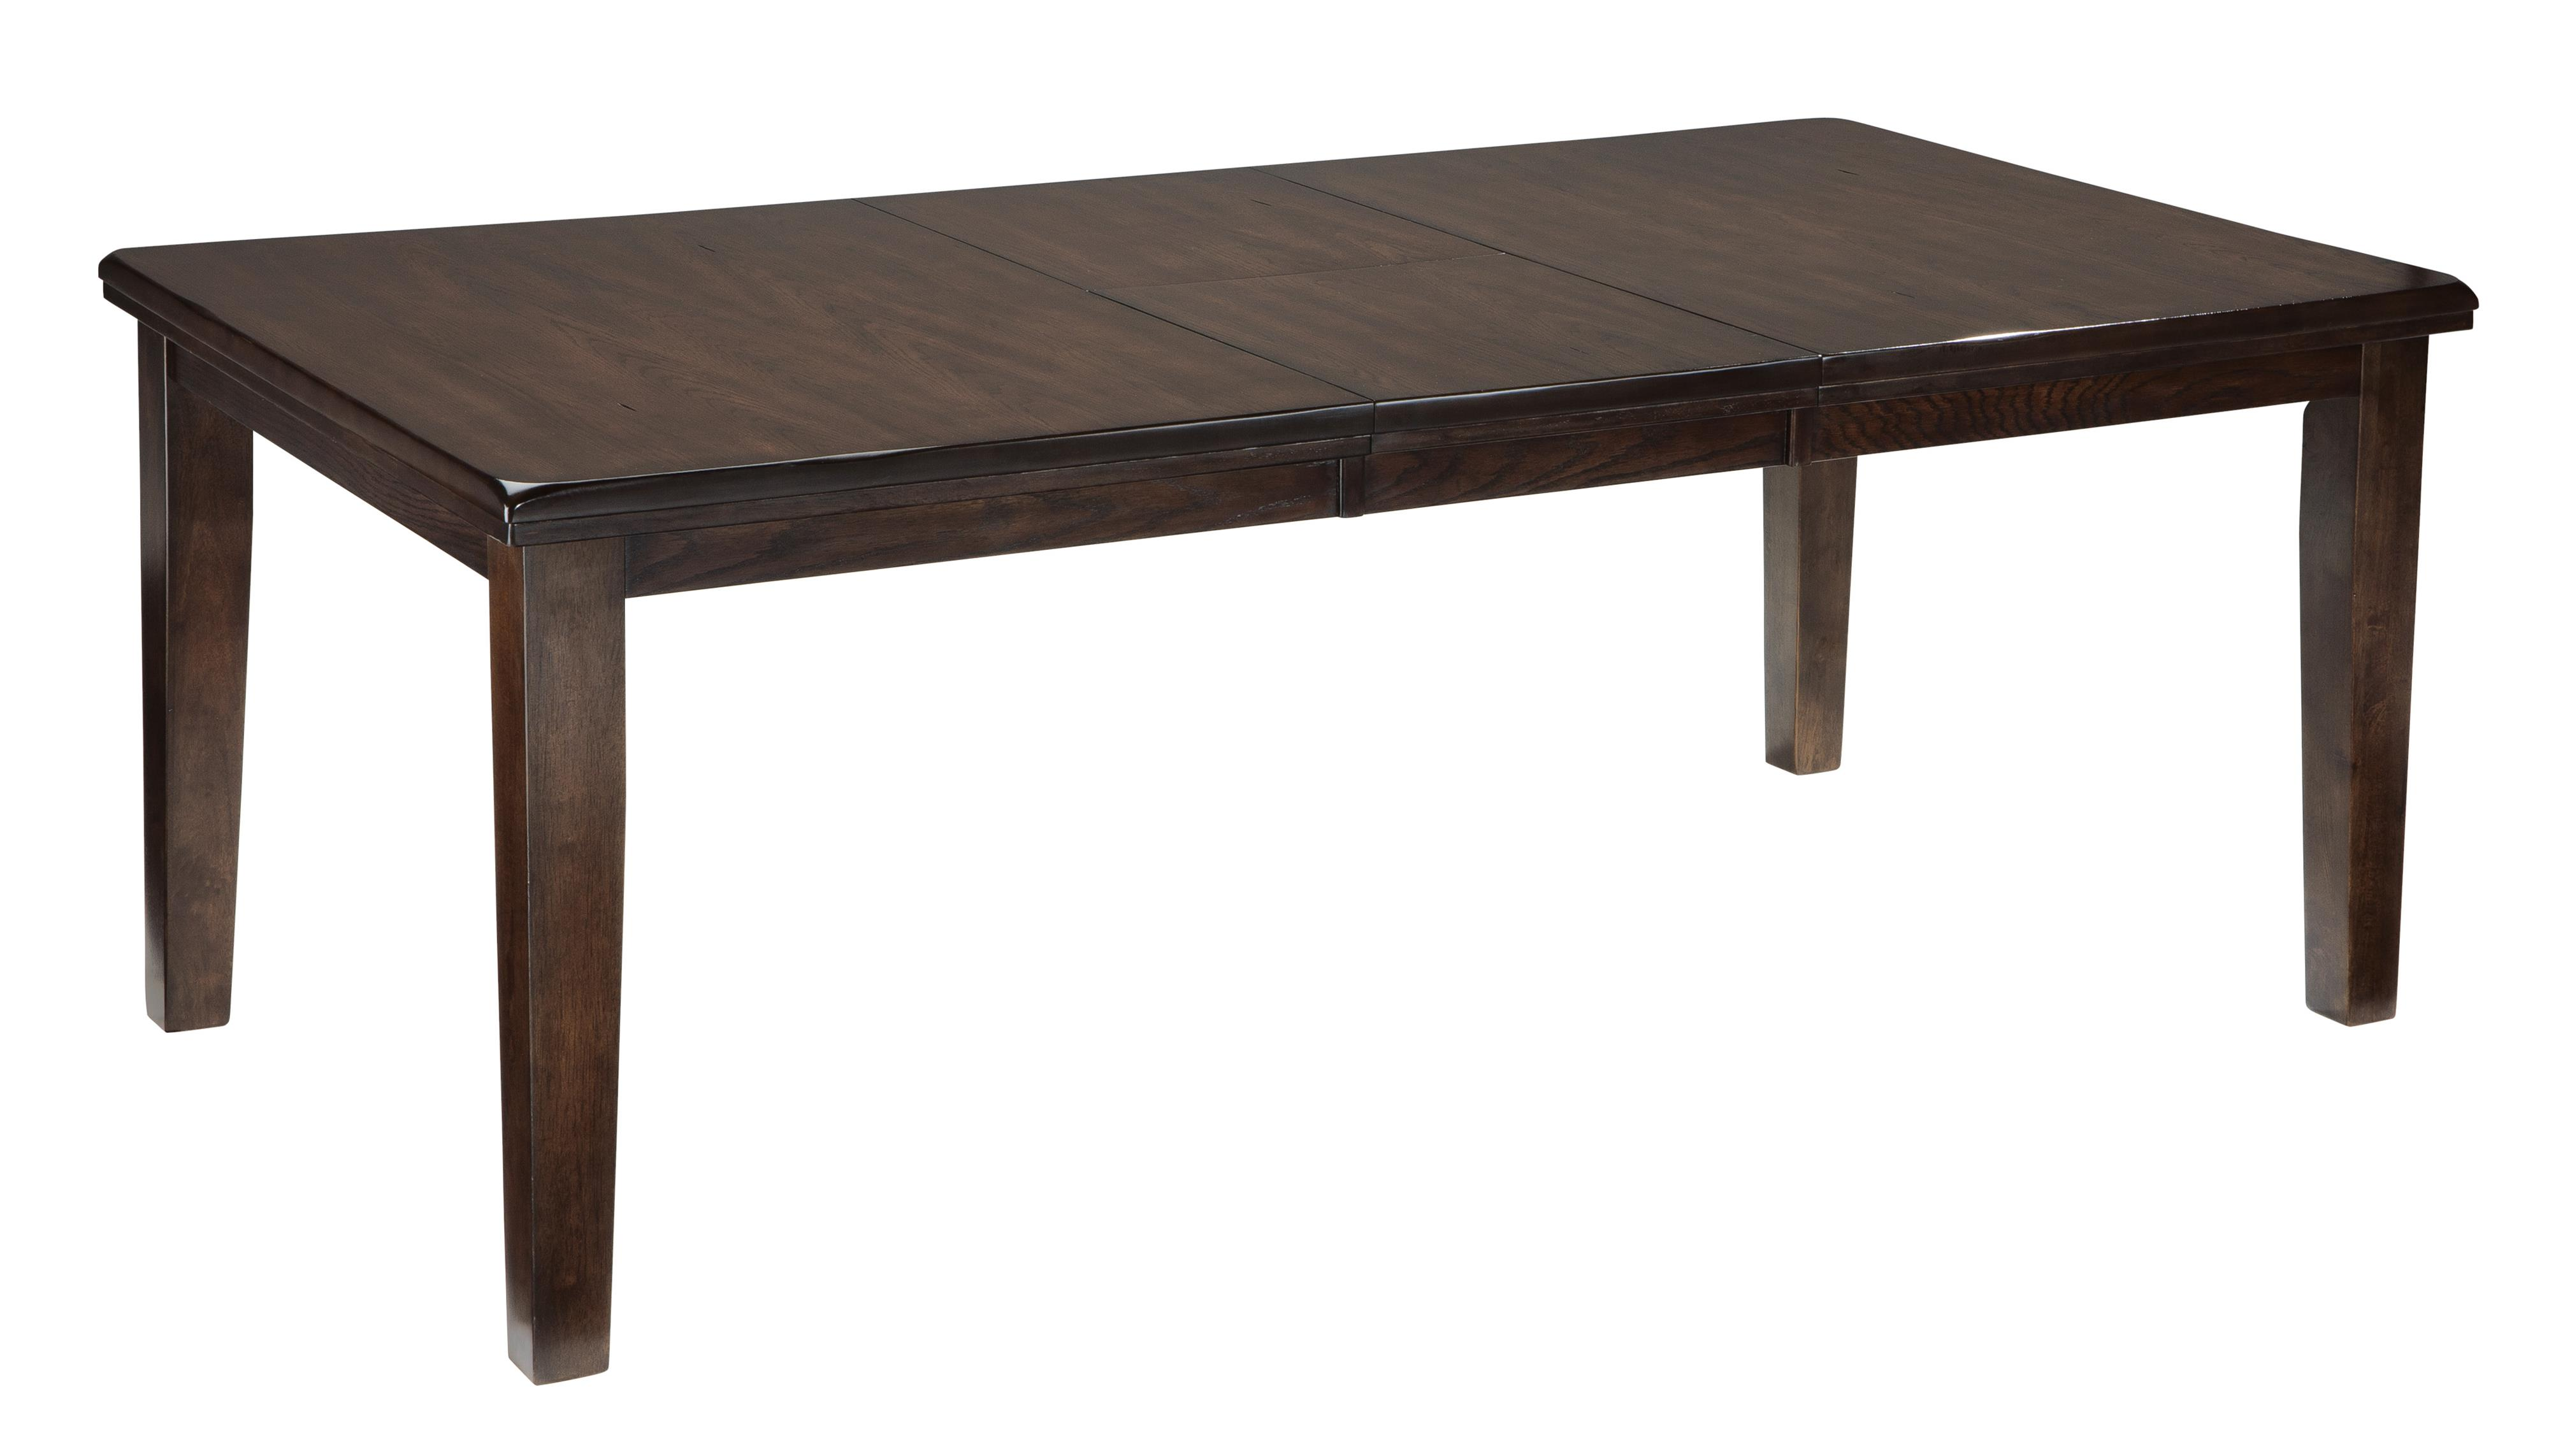 Haddigan Extending Dining Room Table by Signature Design by Ashley at Darvin Furniture